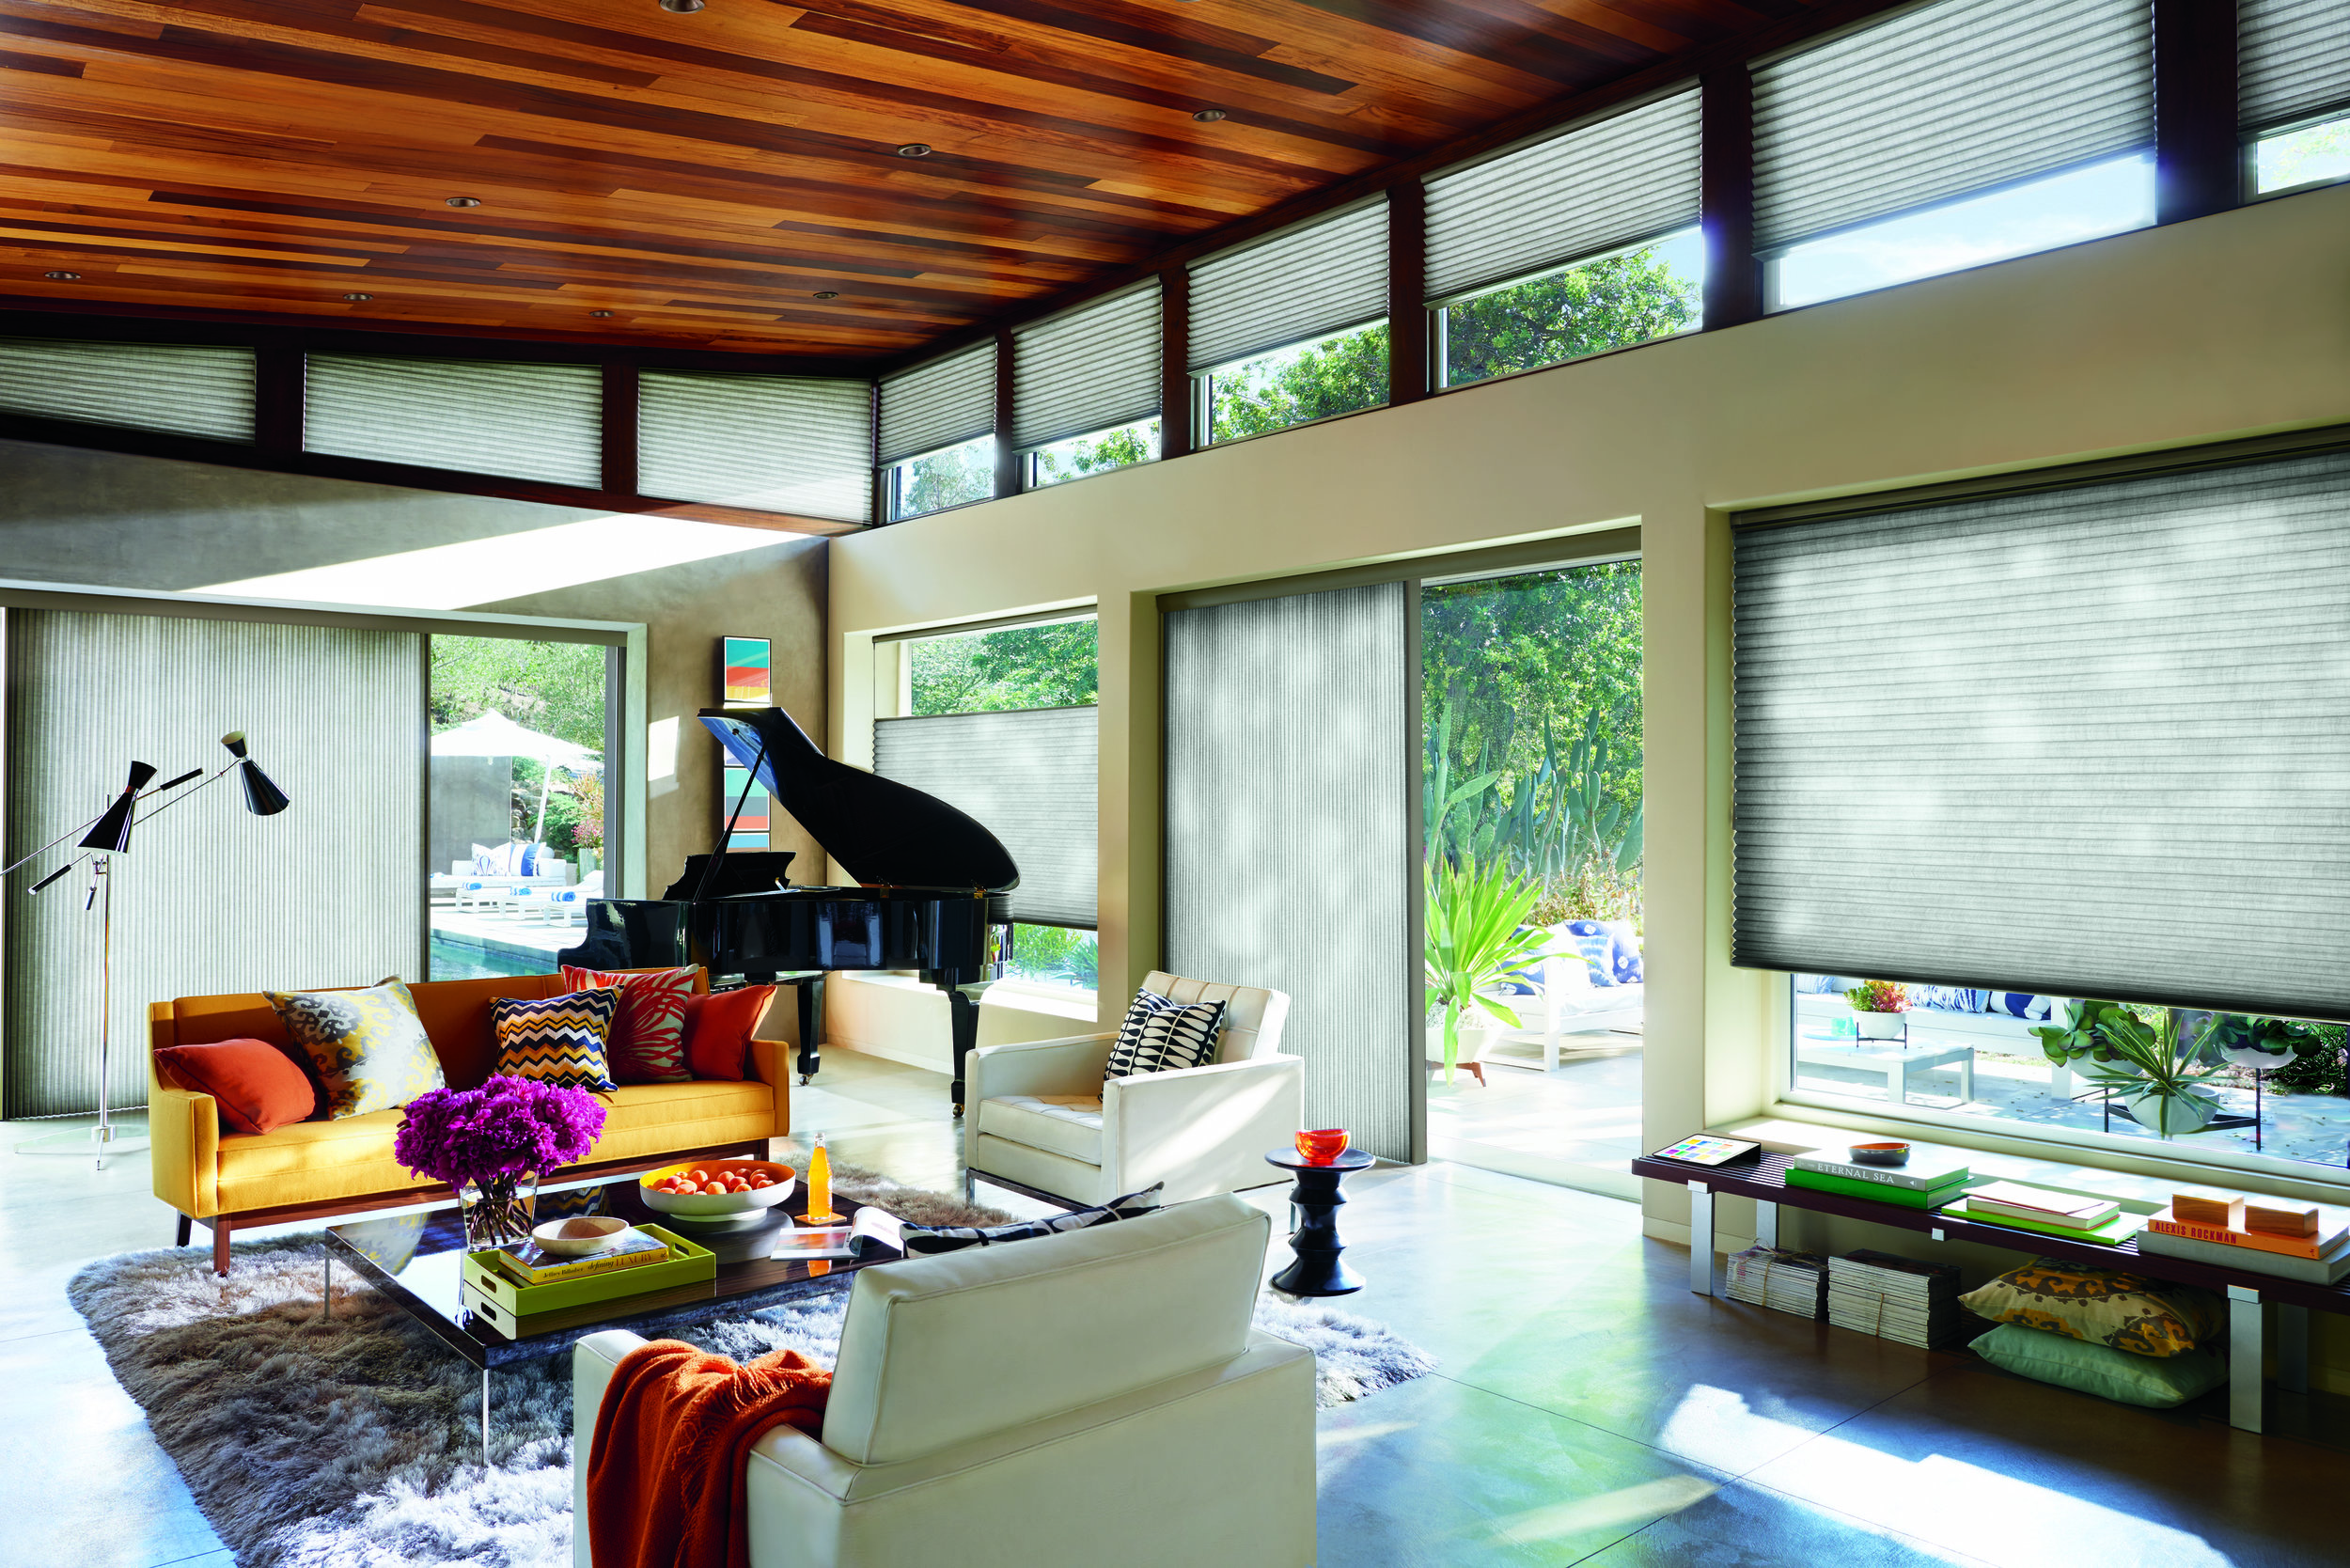 Duette Honeycomb Shades versatility is unsurpassed with specialty shapes: The Vertiglide for sliding patio doors, operational angles and motorization.  One shade for all windows.